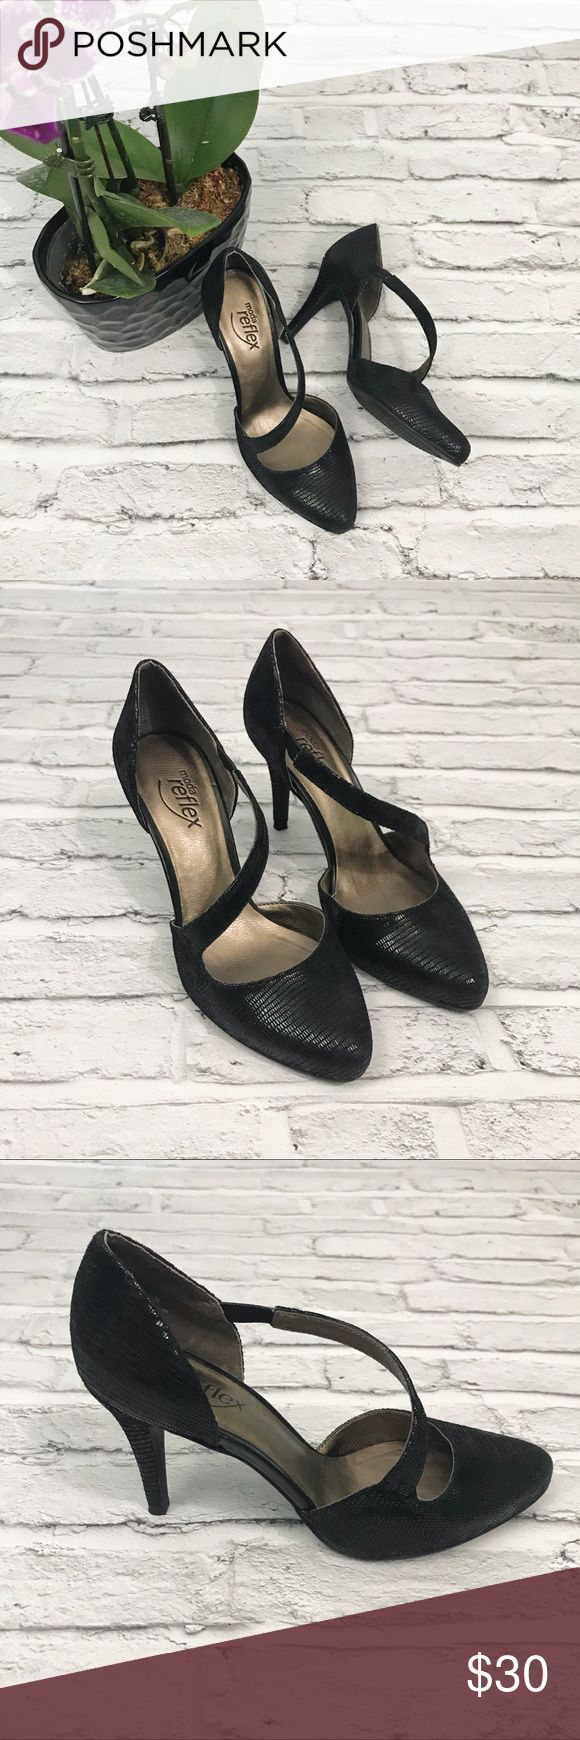 """Moda Reflex Black Faux Snakeskin Pump Size 6.5 Moda Reflex Faux Snakeskin Pumps. Super comfortable. Asymmetrical stretch ankle strap. Almond tie. Approximate heel height 3.25"""". Excellent Condition with the exception of minor wear of bottom of heel. Bundle and Save! Moda Reflex Shoes Heels"""